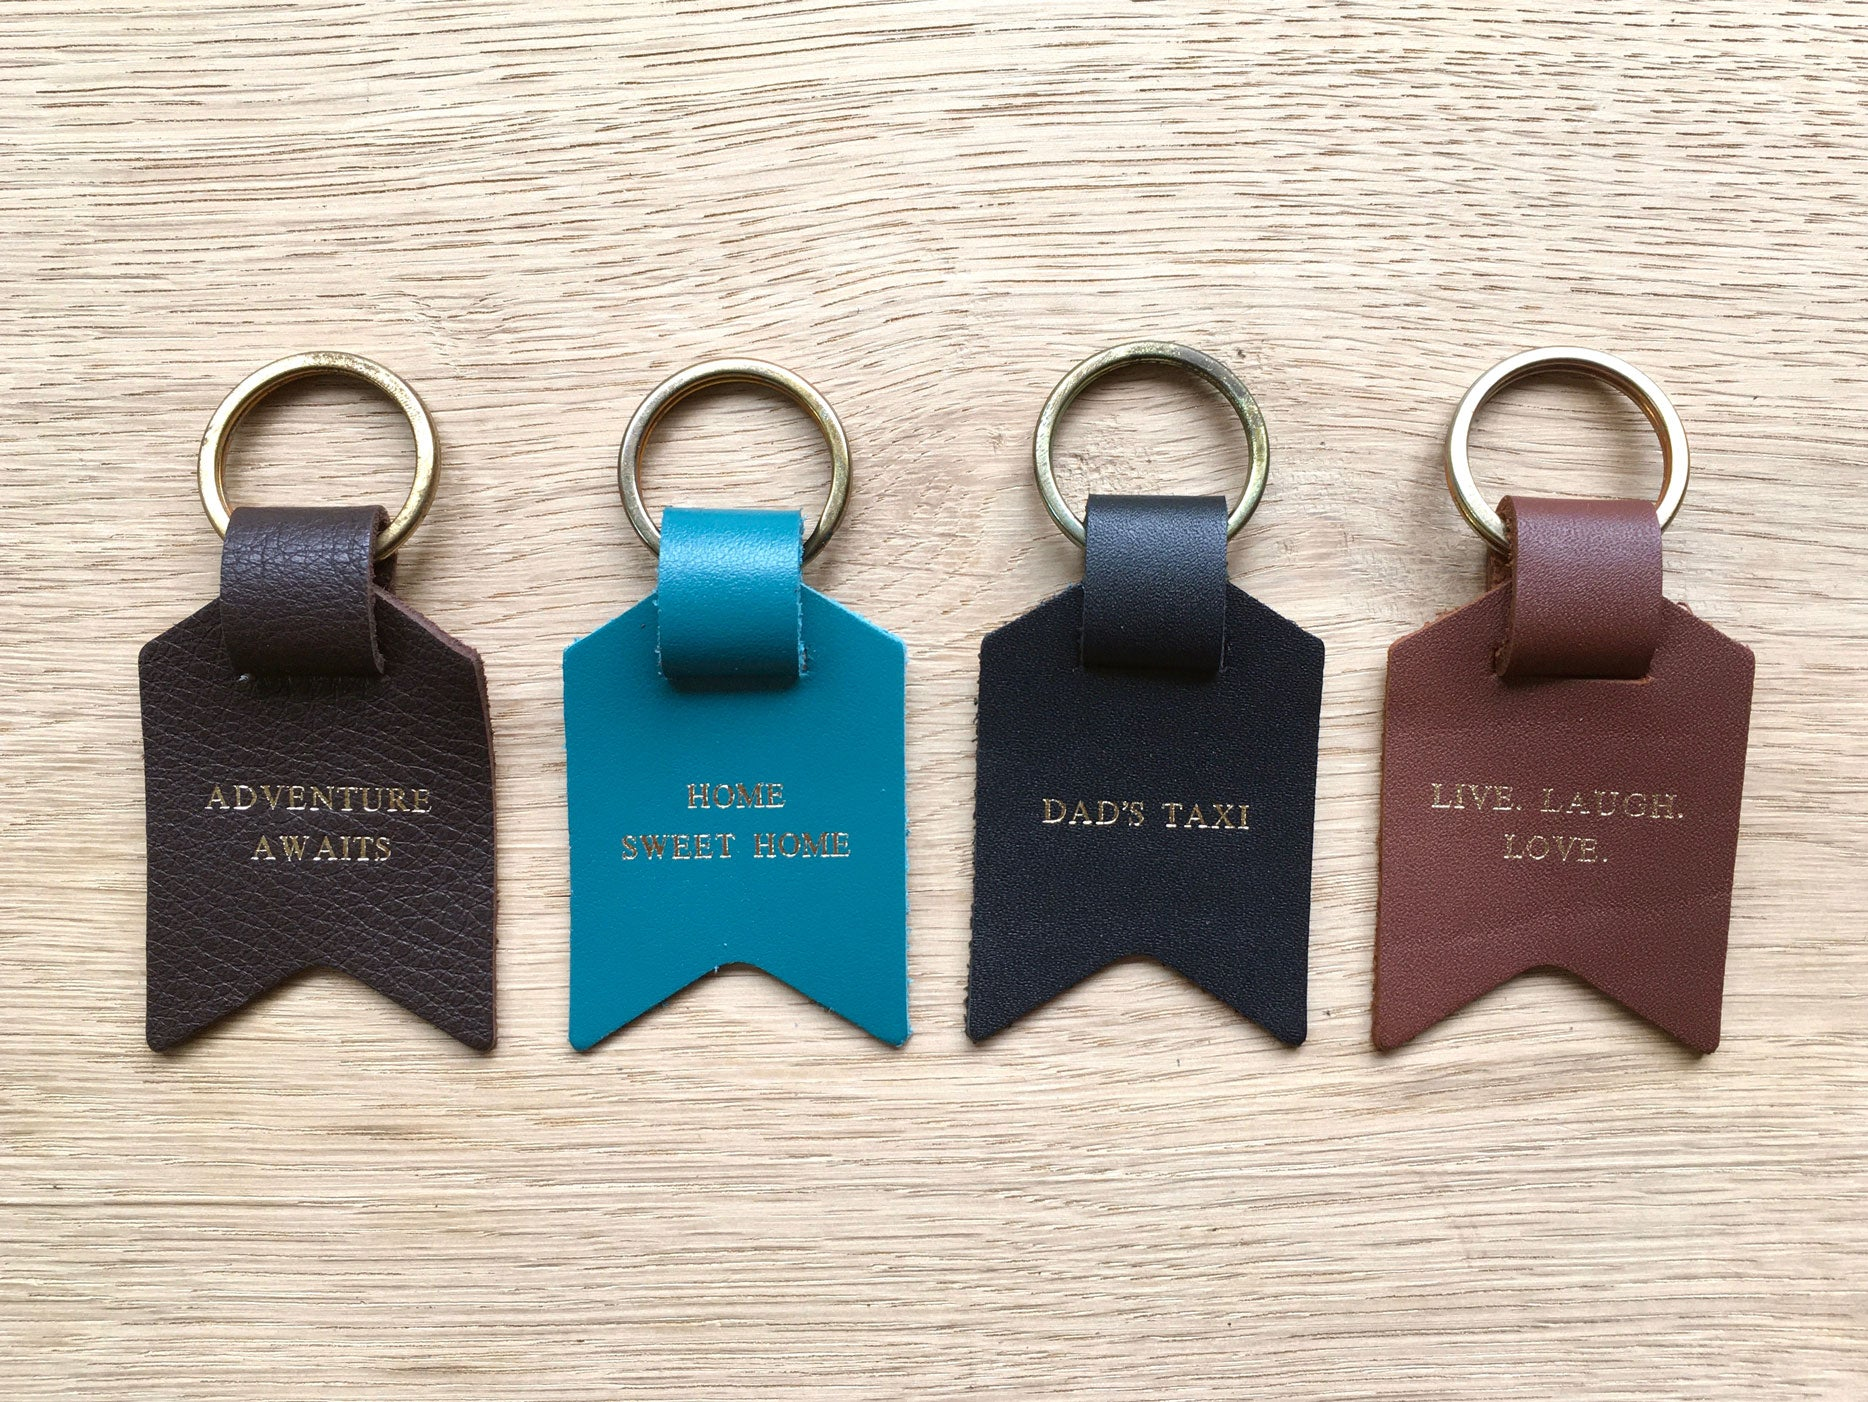 Leather keyring from Bookshell Bindery shown here in all available colours and phrases – Dark brown, blue, black, light brown